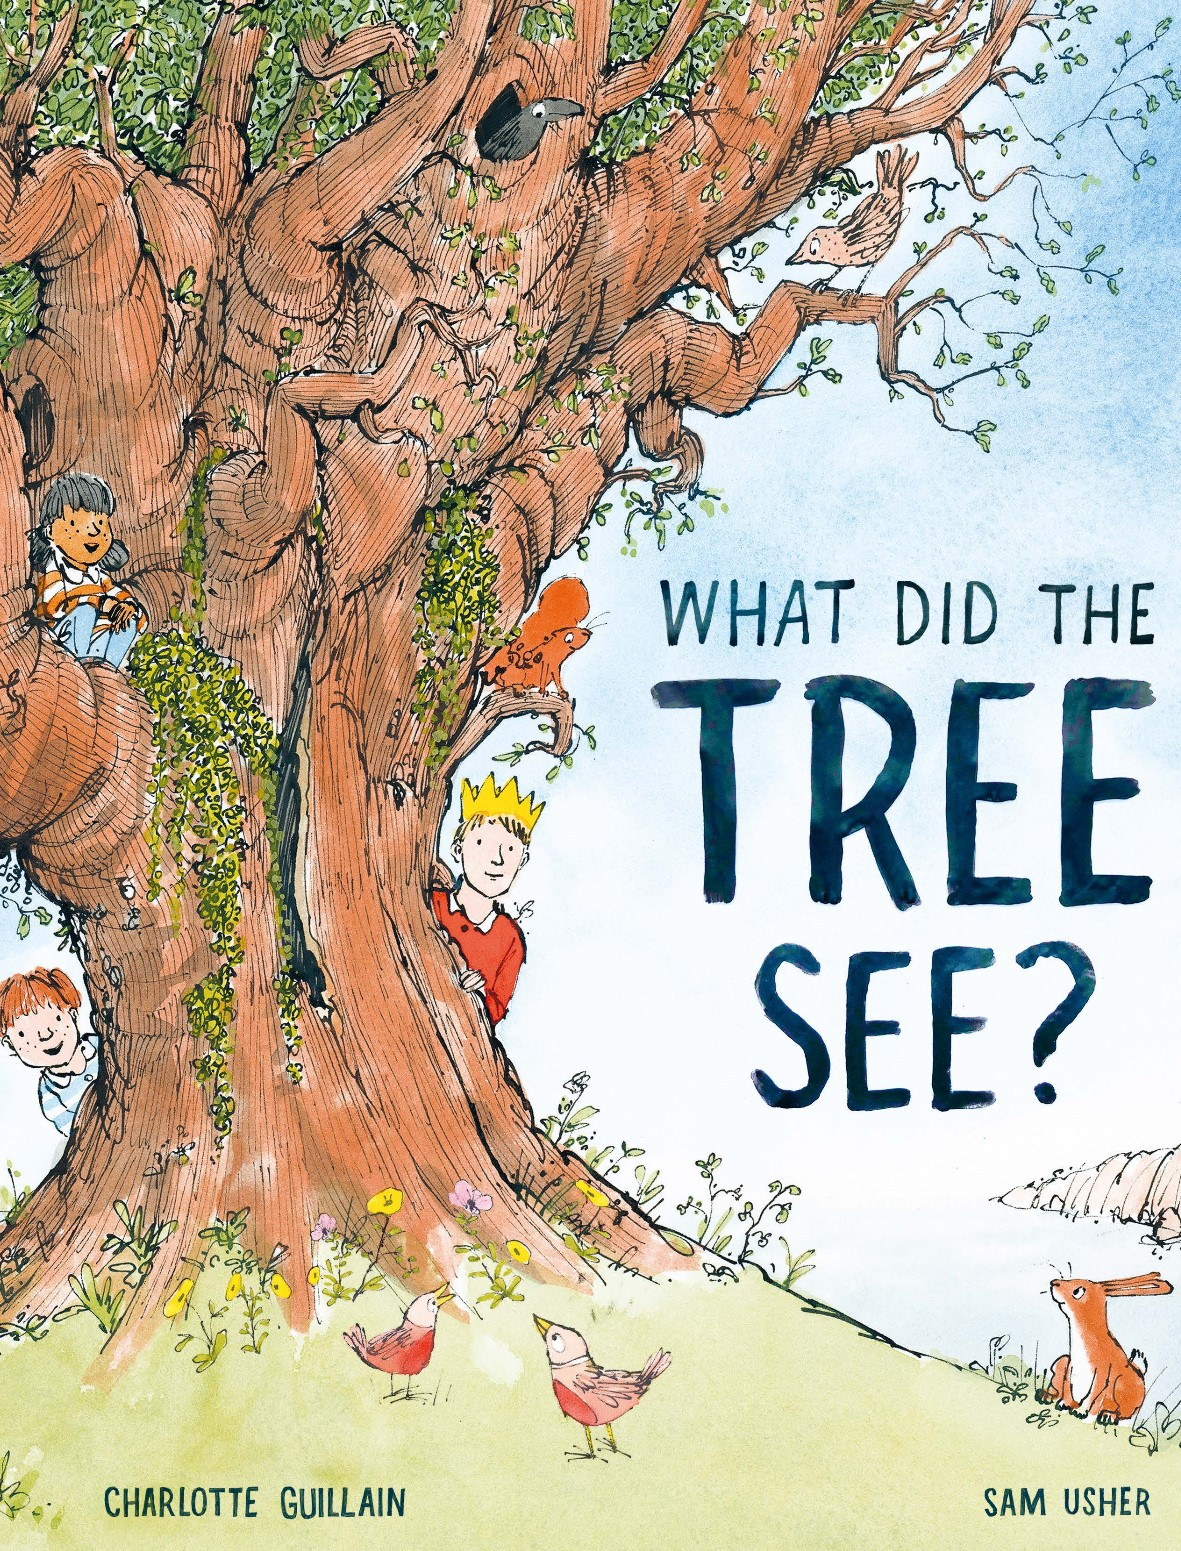 What Did The Tree See? By Charlotte Guillian